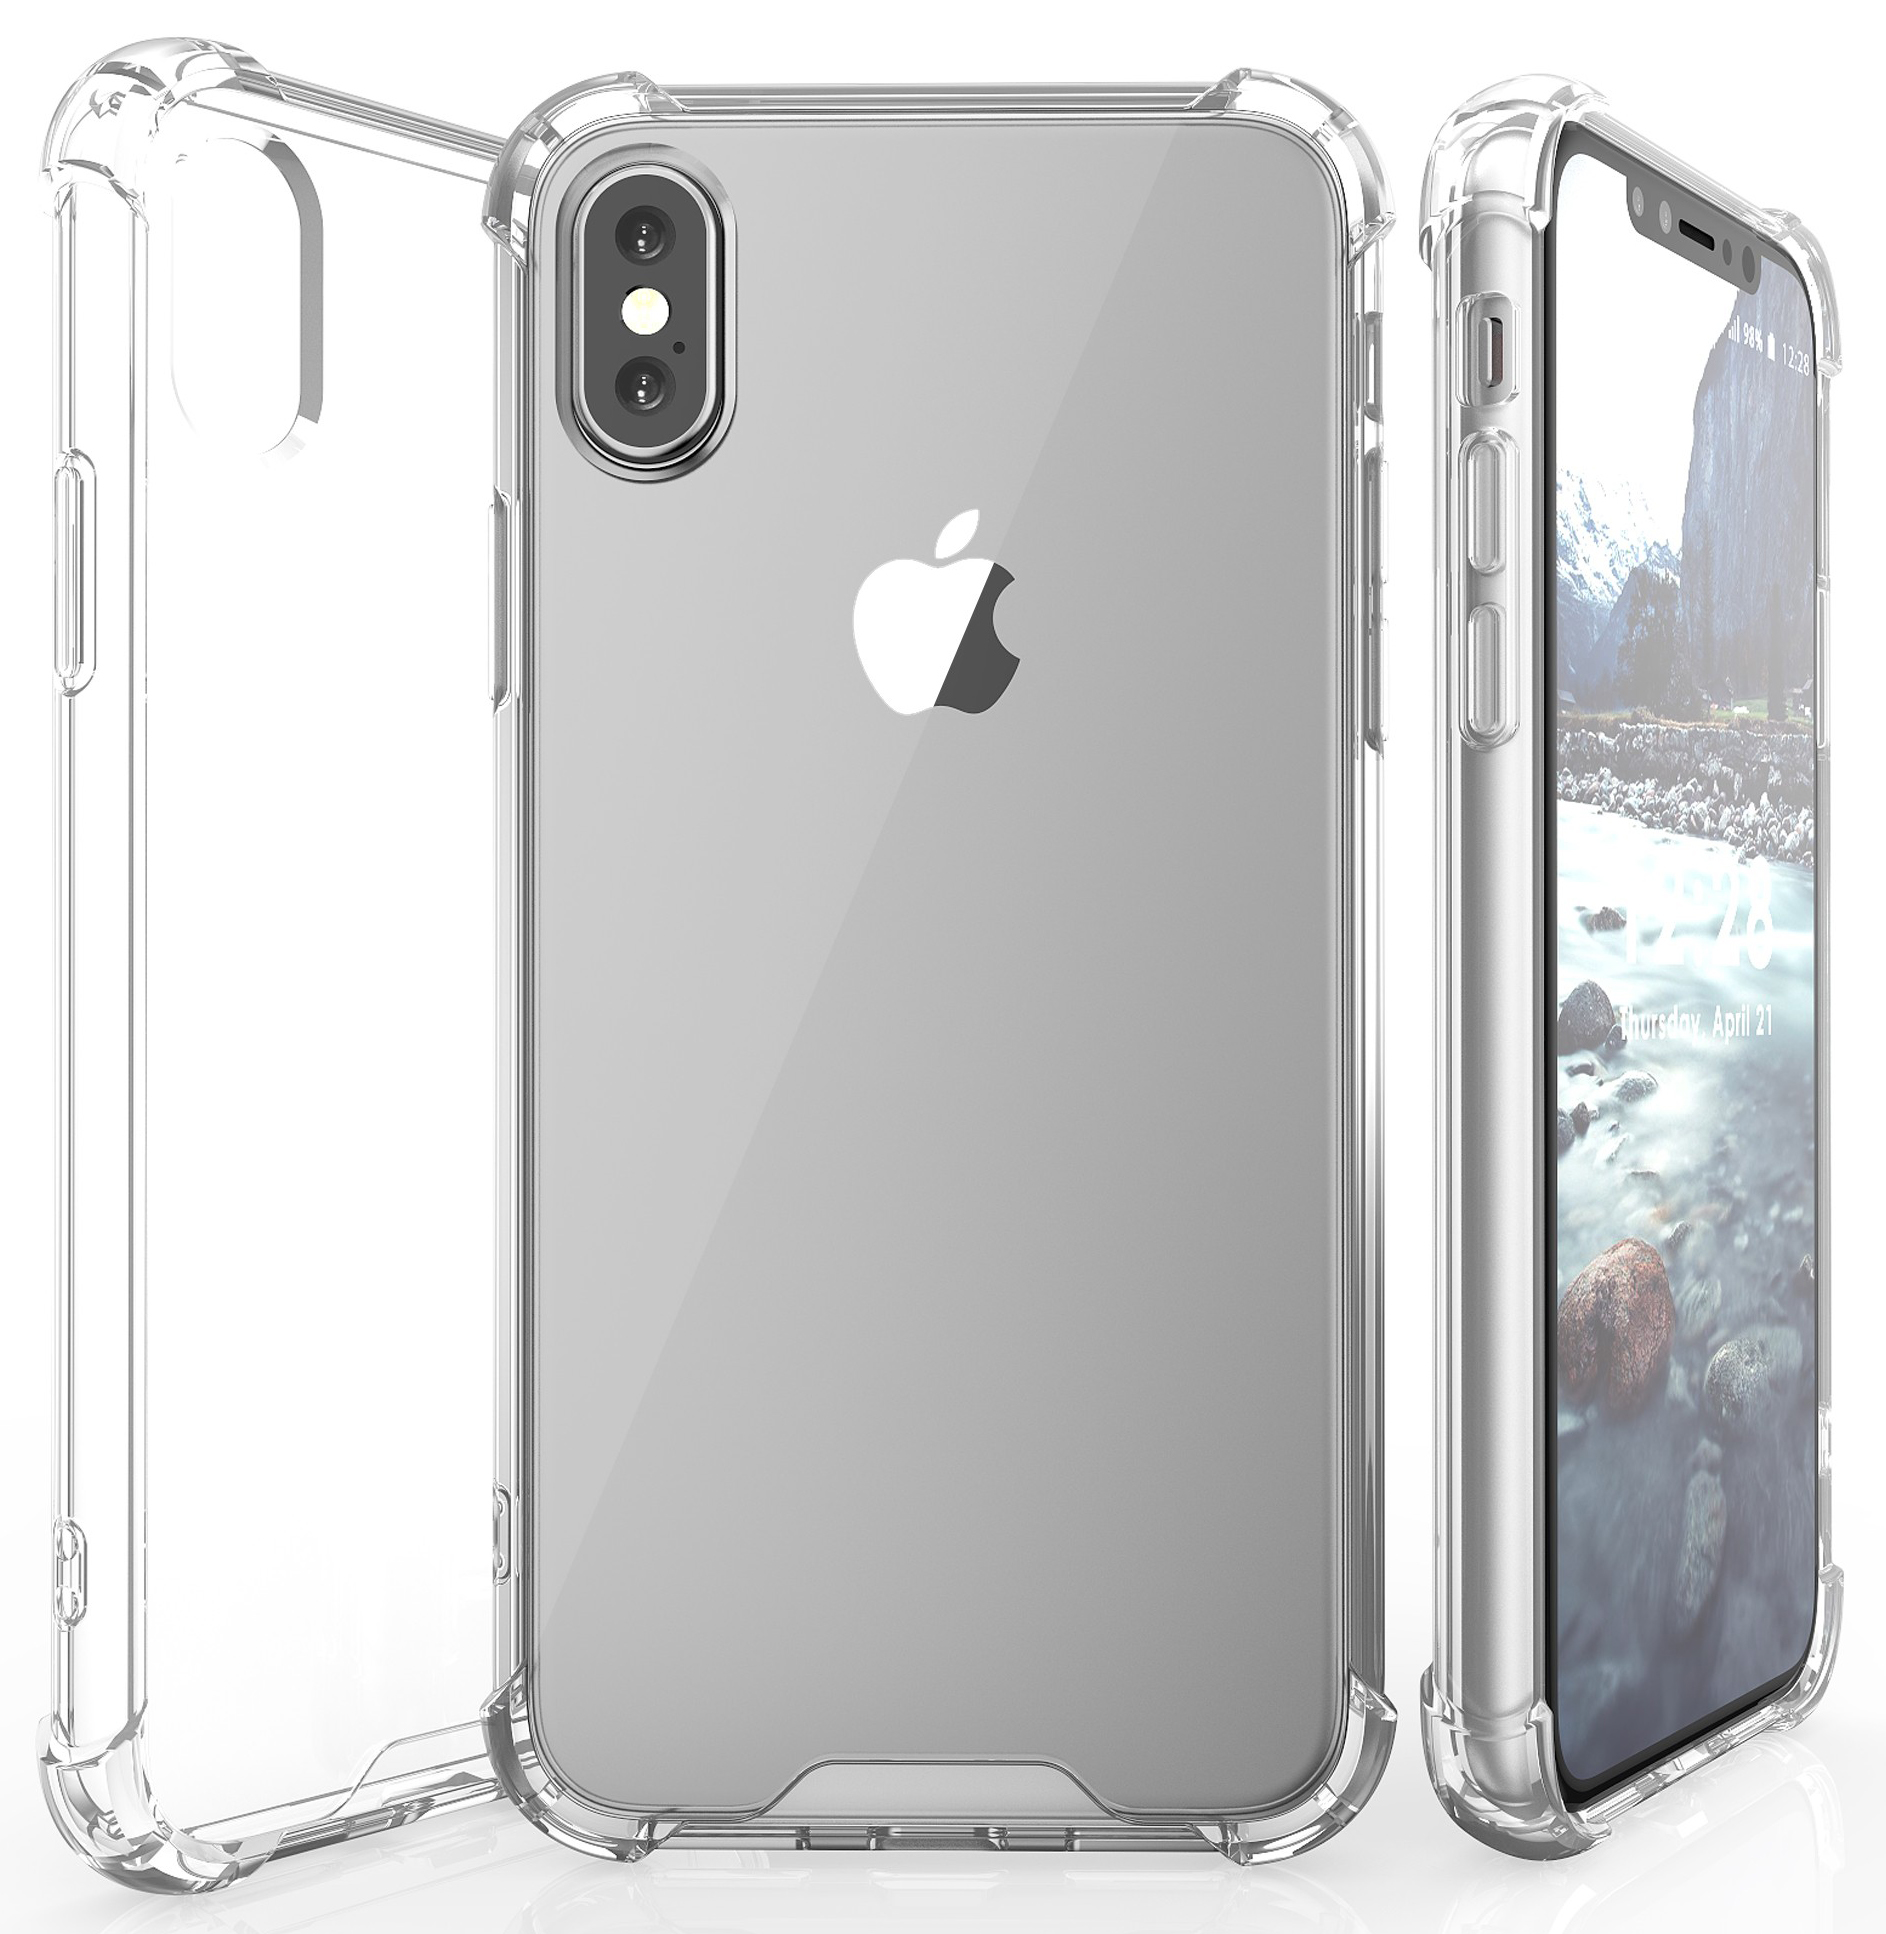 new concept 1bdc8 f8997 iPhone X Case, Aquaflex Clear Transparent TPU [Anti-Shock] Slim Cover with  Hard Back for Apple iPhone 10